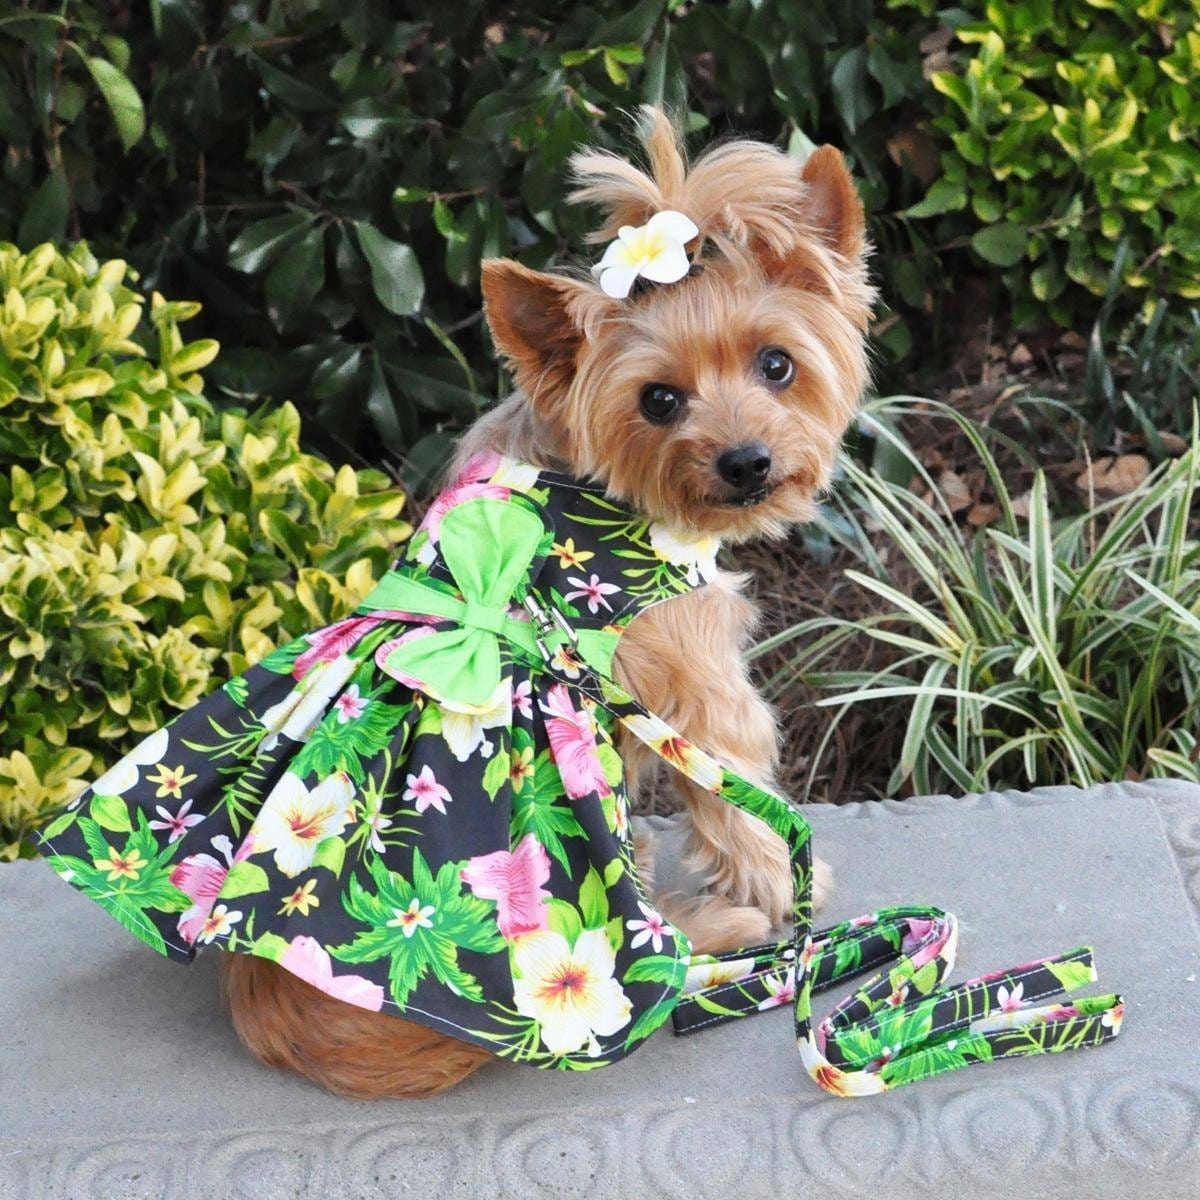 Small Dog Clothes Small Dog Harnesses Small Dog Carriers